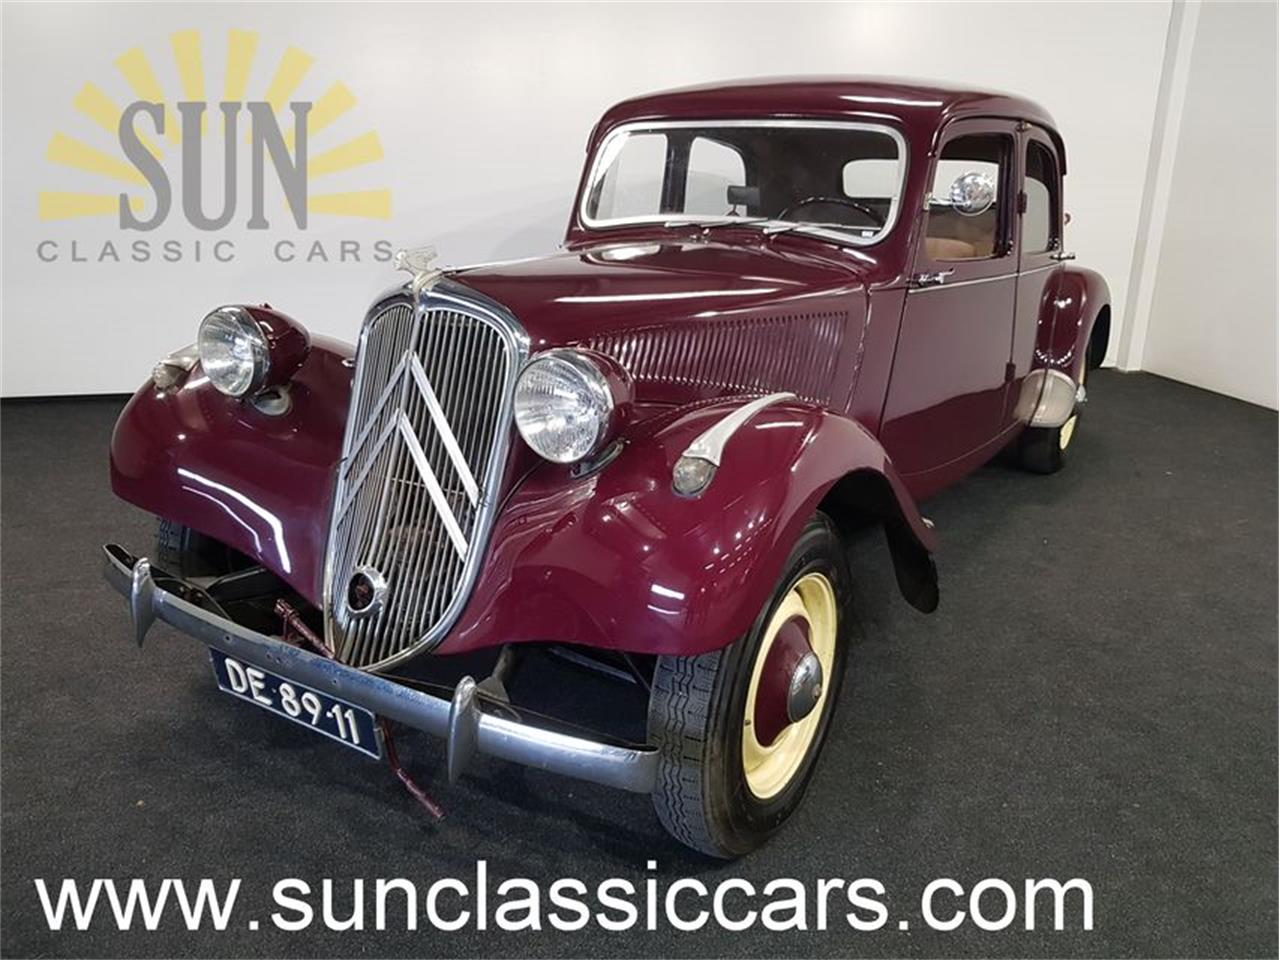 Large Picture of 1955 Citroen Traction Avant located in Noord-Brabant - $17,150.00 - PAFK